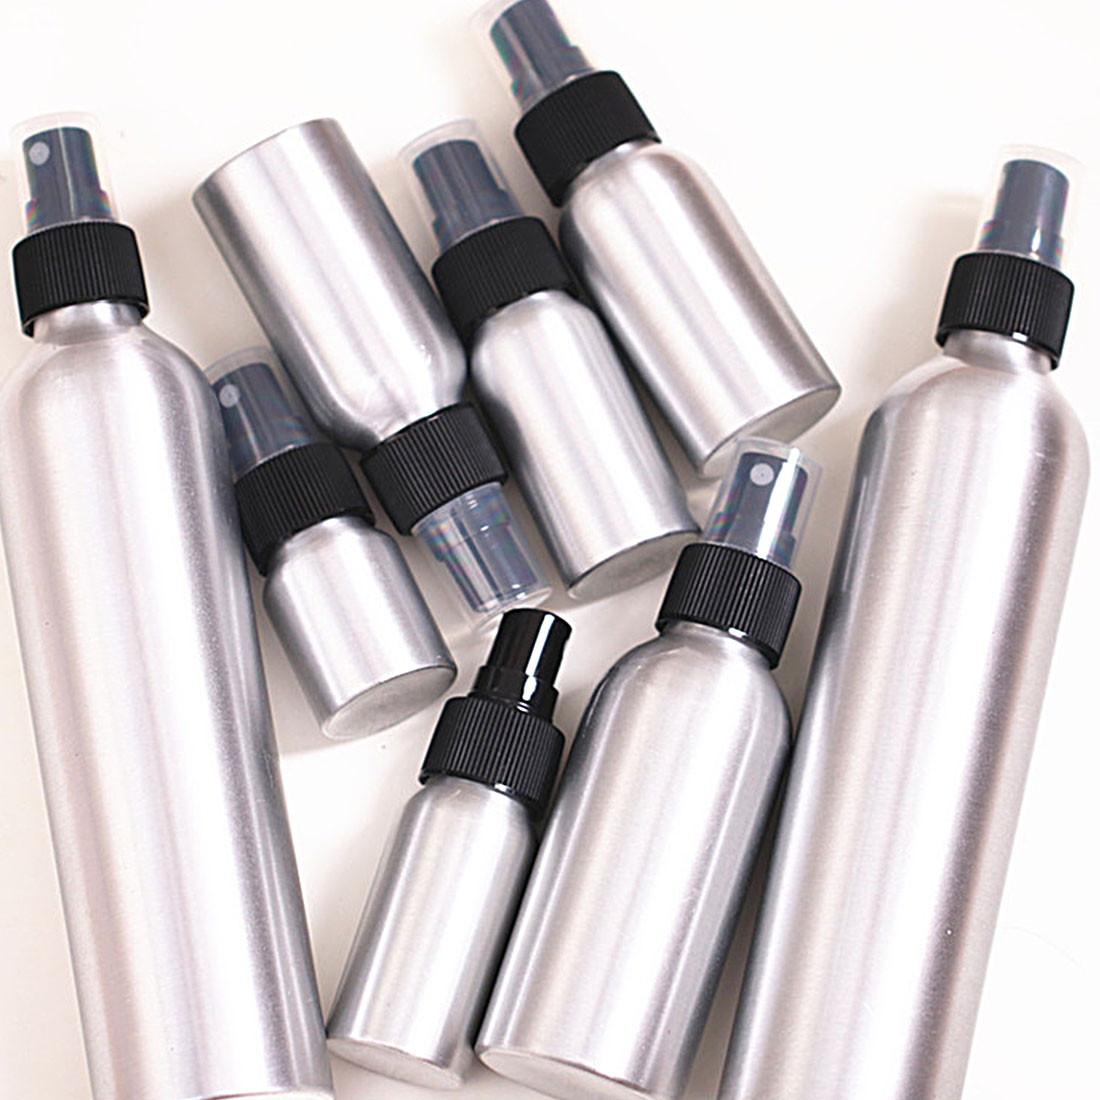 Hot 1PC 30ml 50ml 100ml Aluminium Spray Atomiser Bottle Refillable Empty Bottles Black Pump Atomizer Cosmetic Packaging Tool